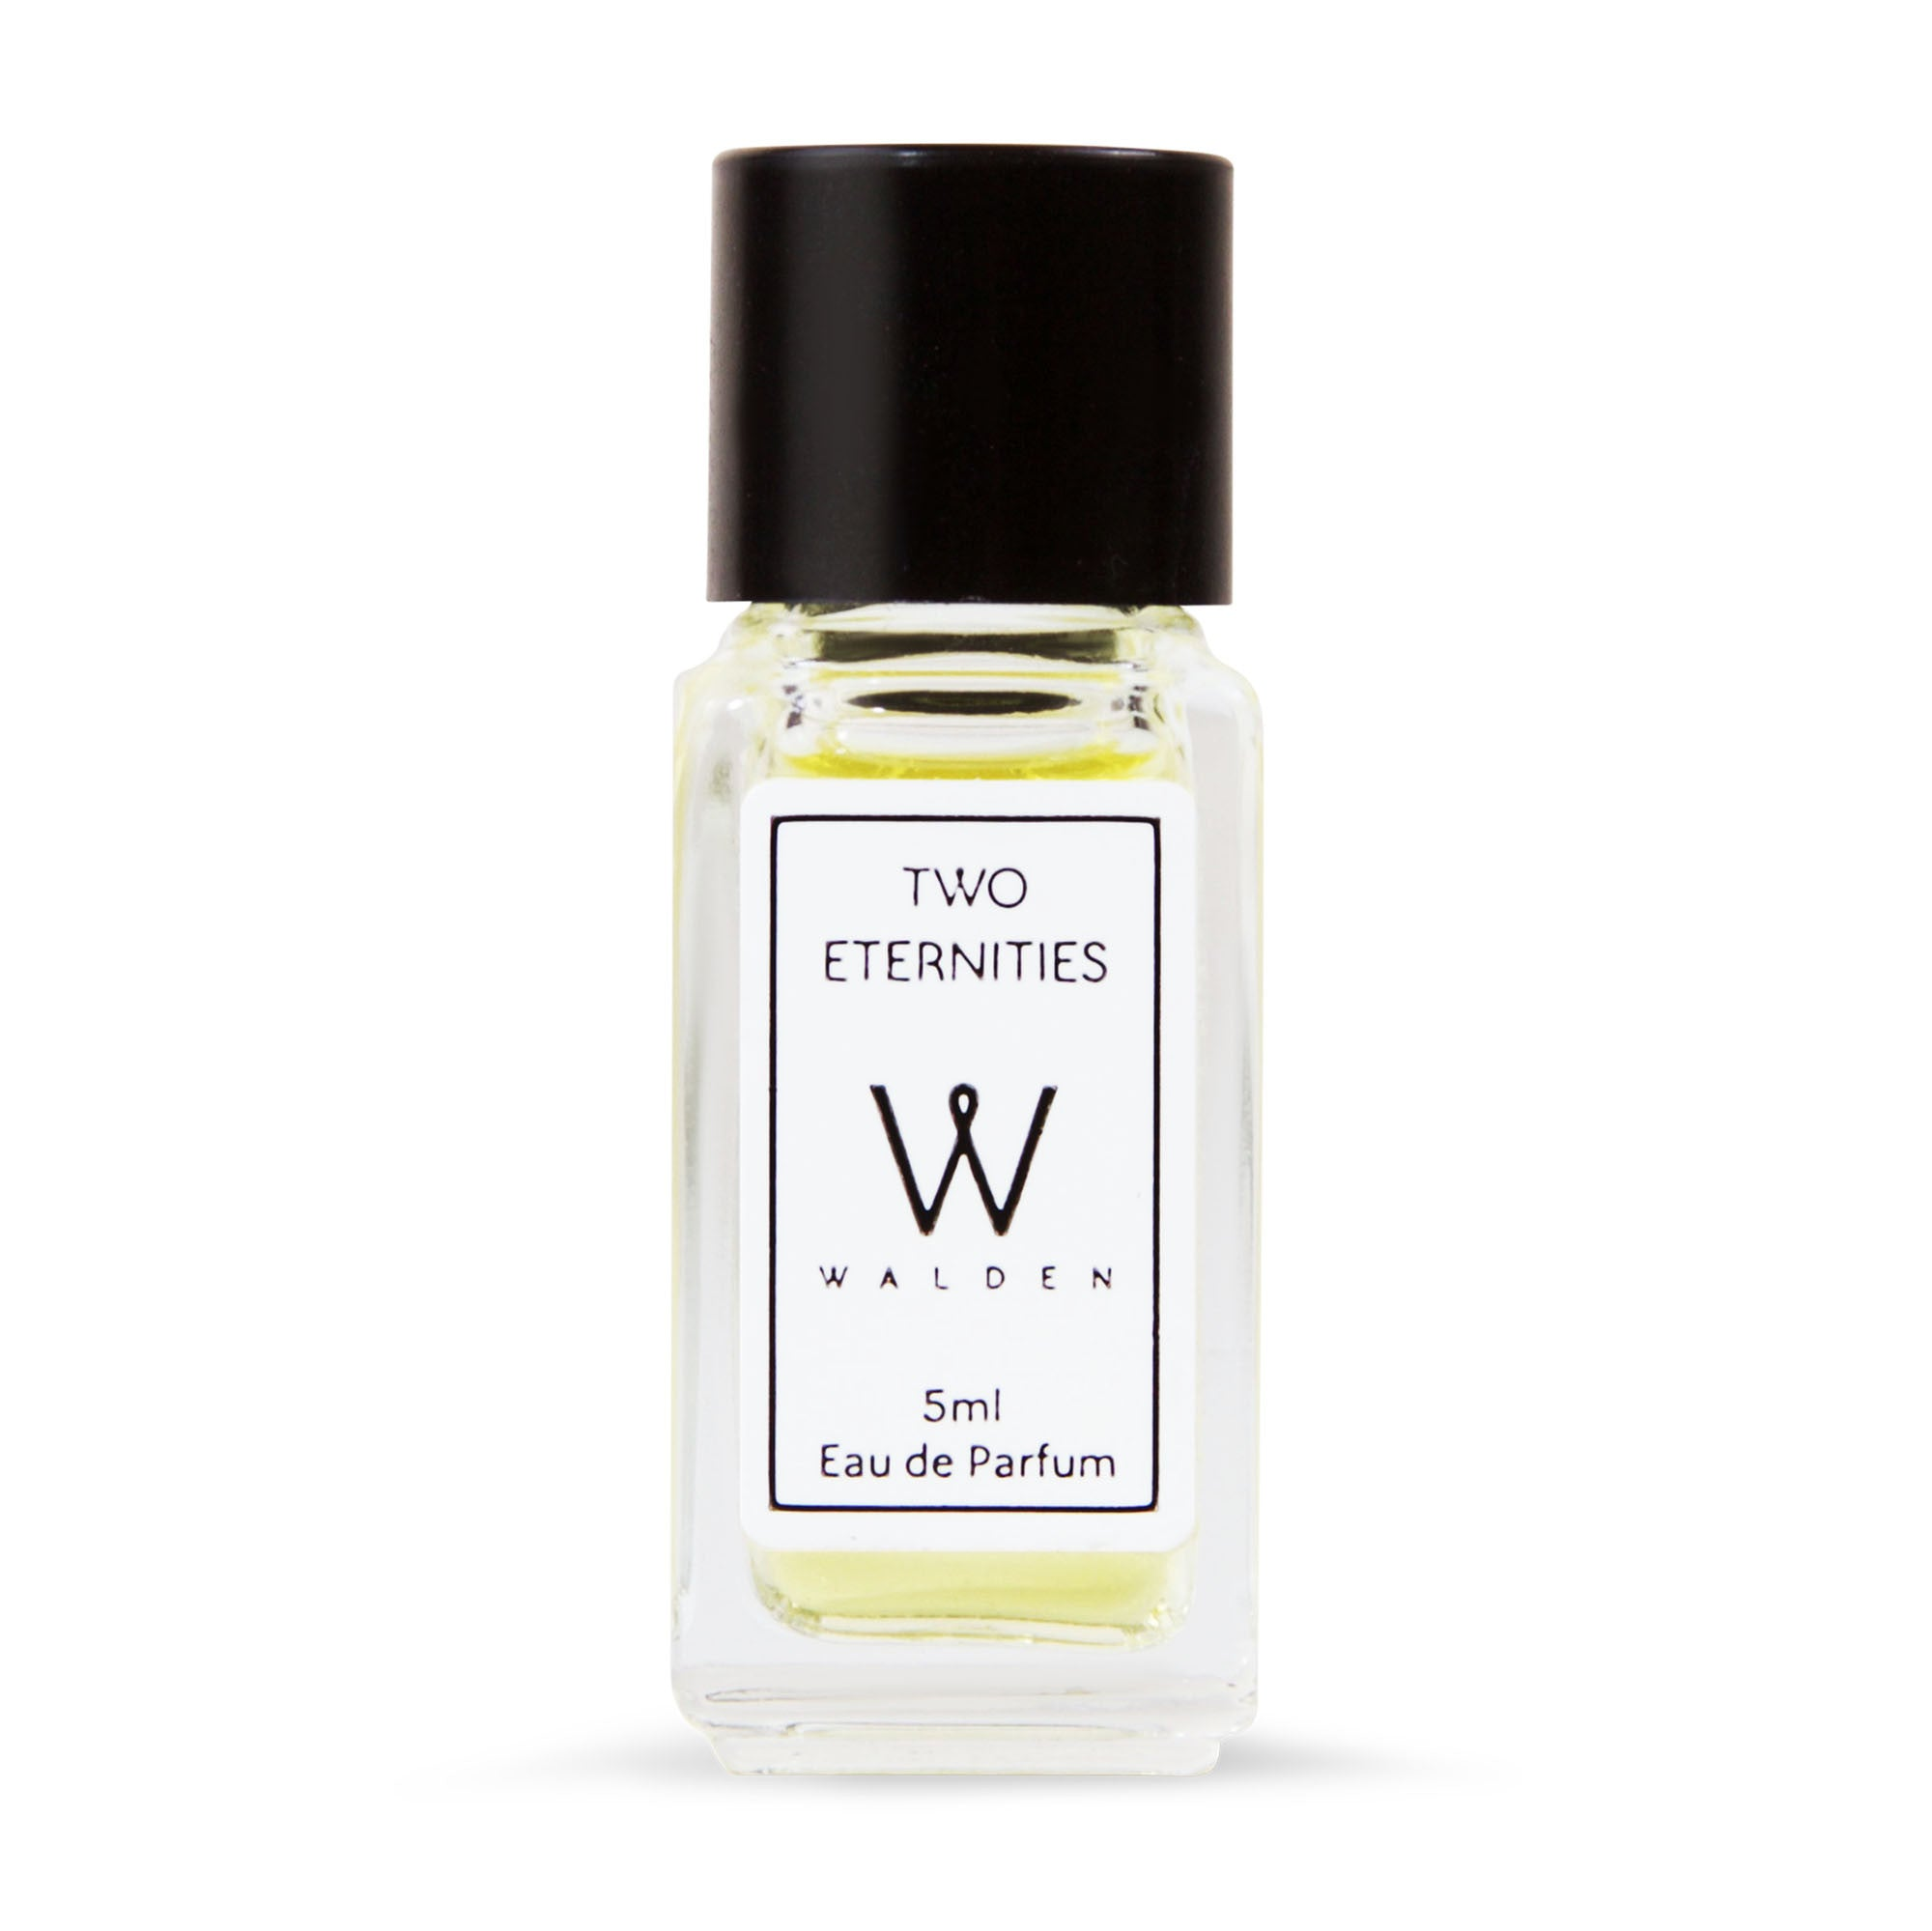 'Two Eternities' Natural Perfume Sample 5ml